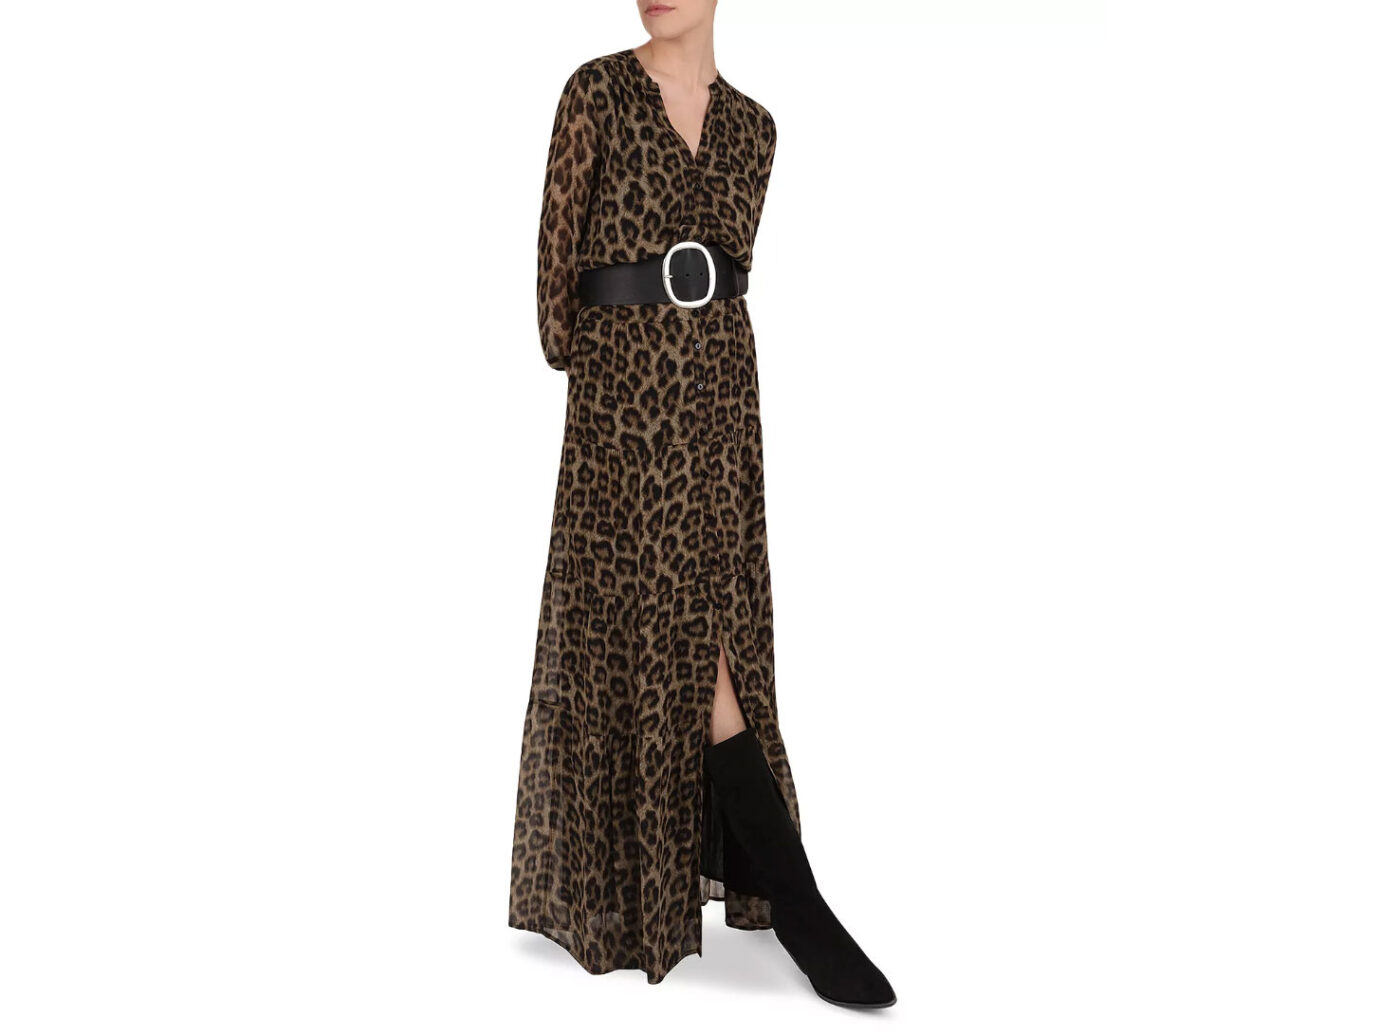 ba&sh Flake Leopard Print Maxi Dress